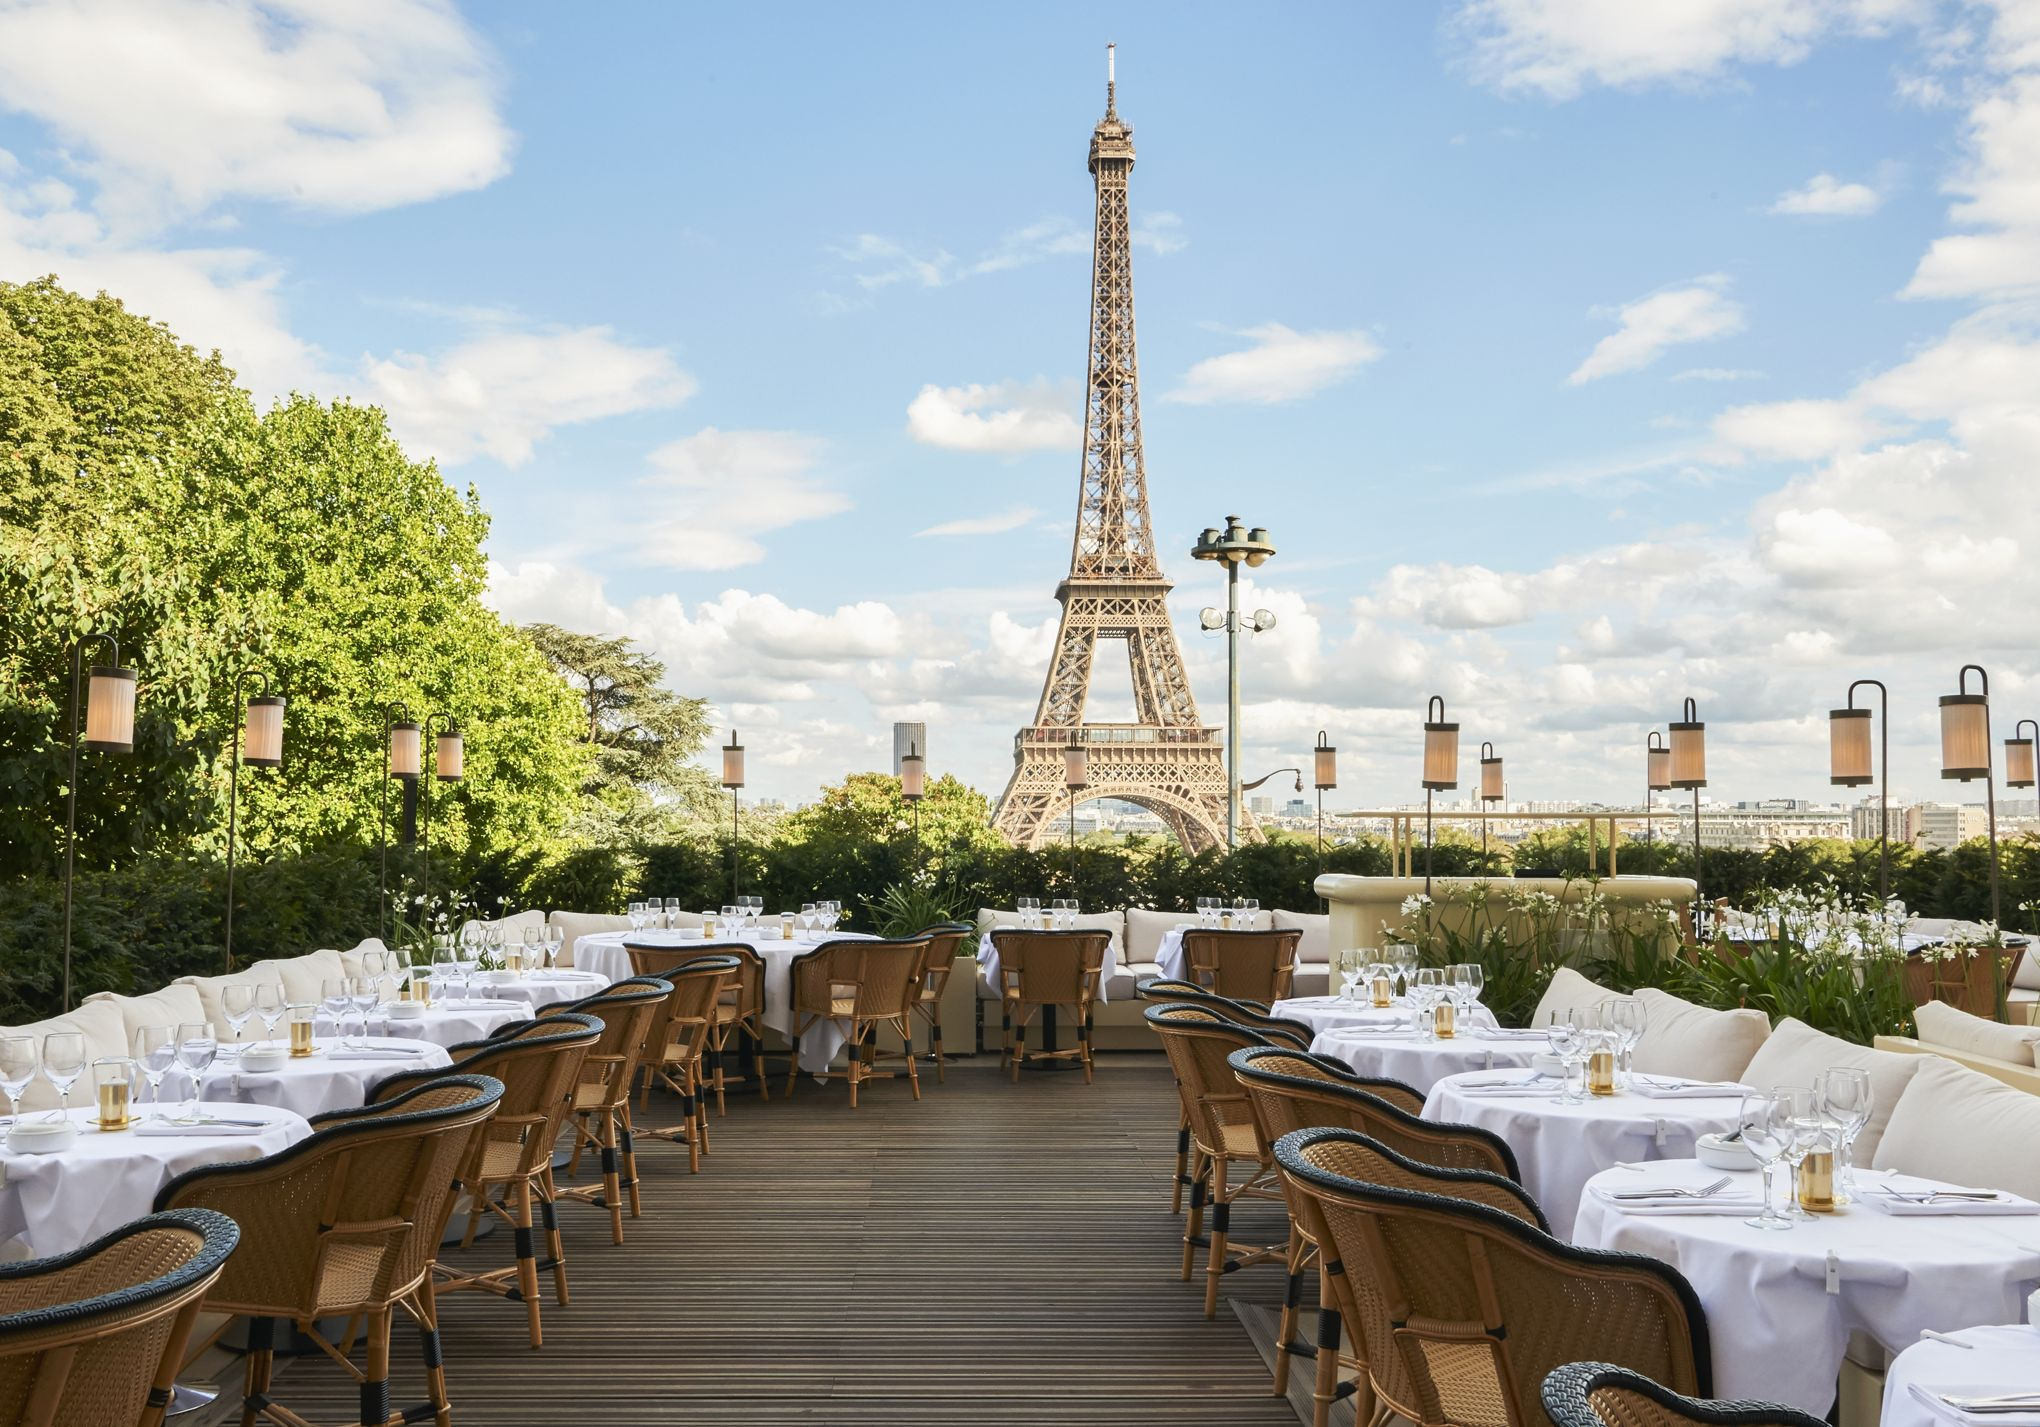 Restaurants with View of Eiffel Tower #5 - Girafe Restaurant